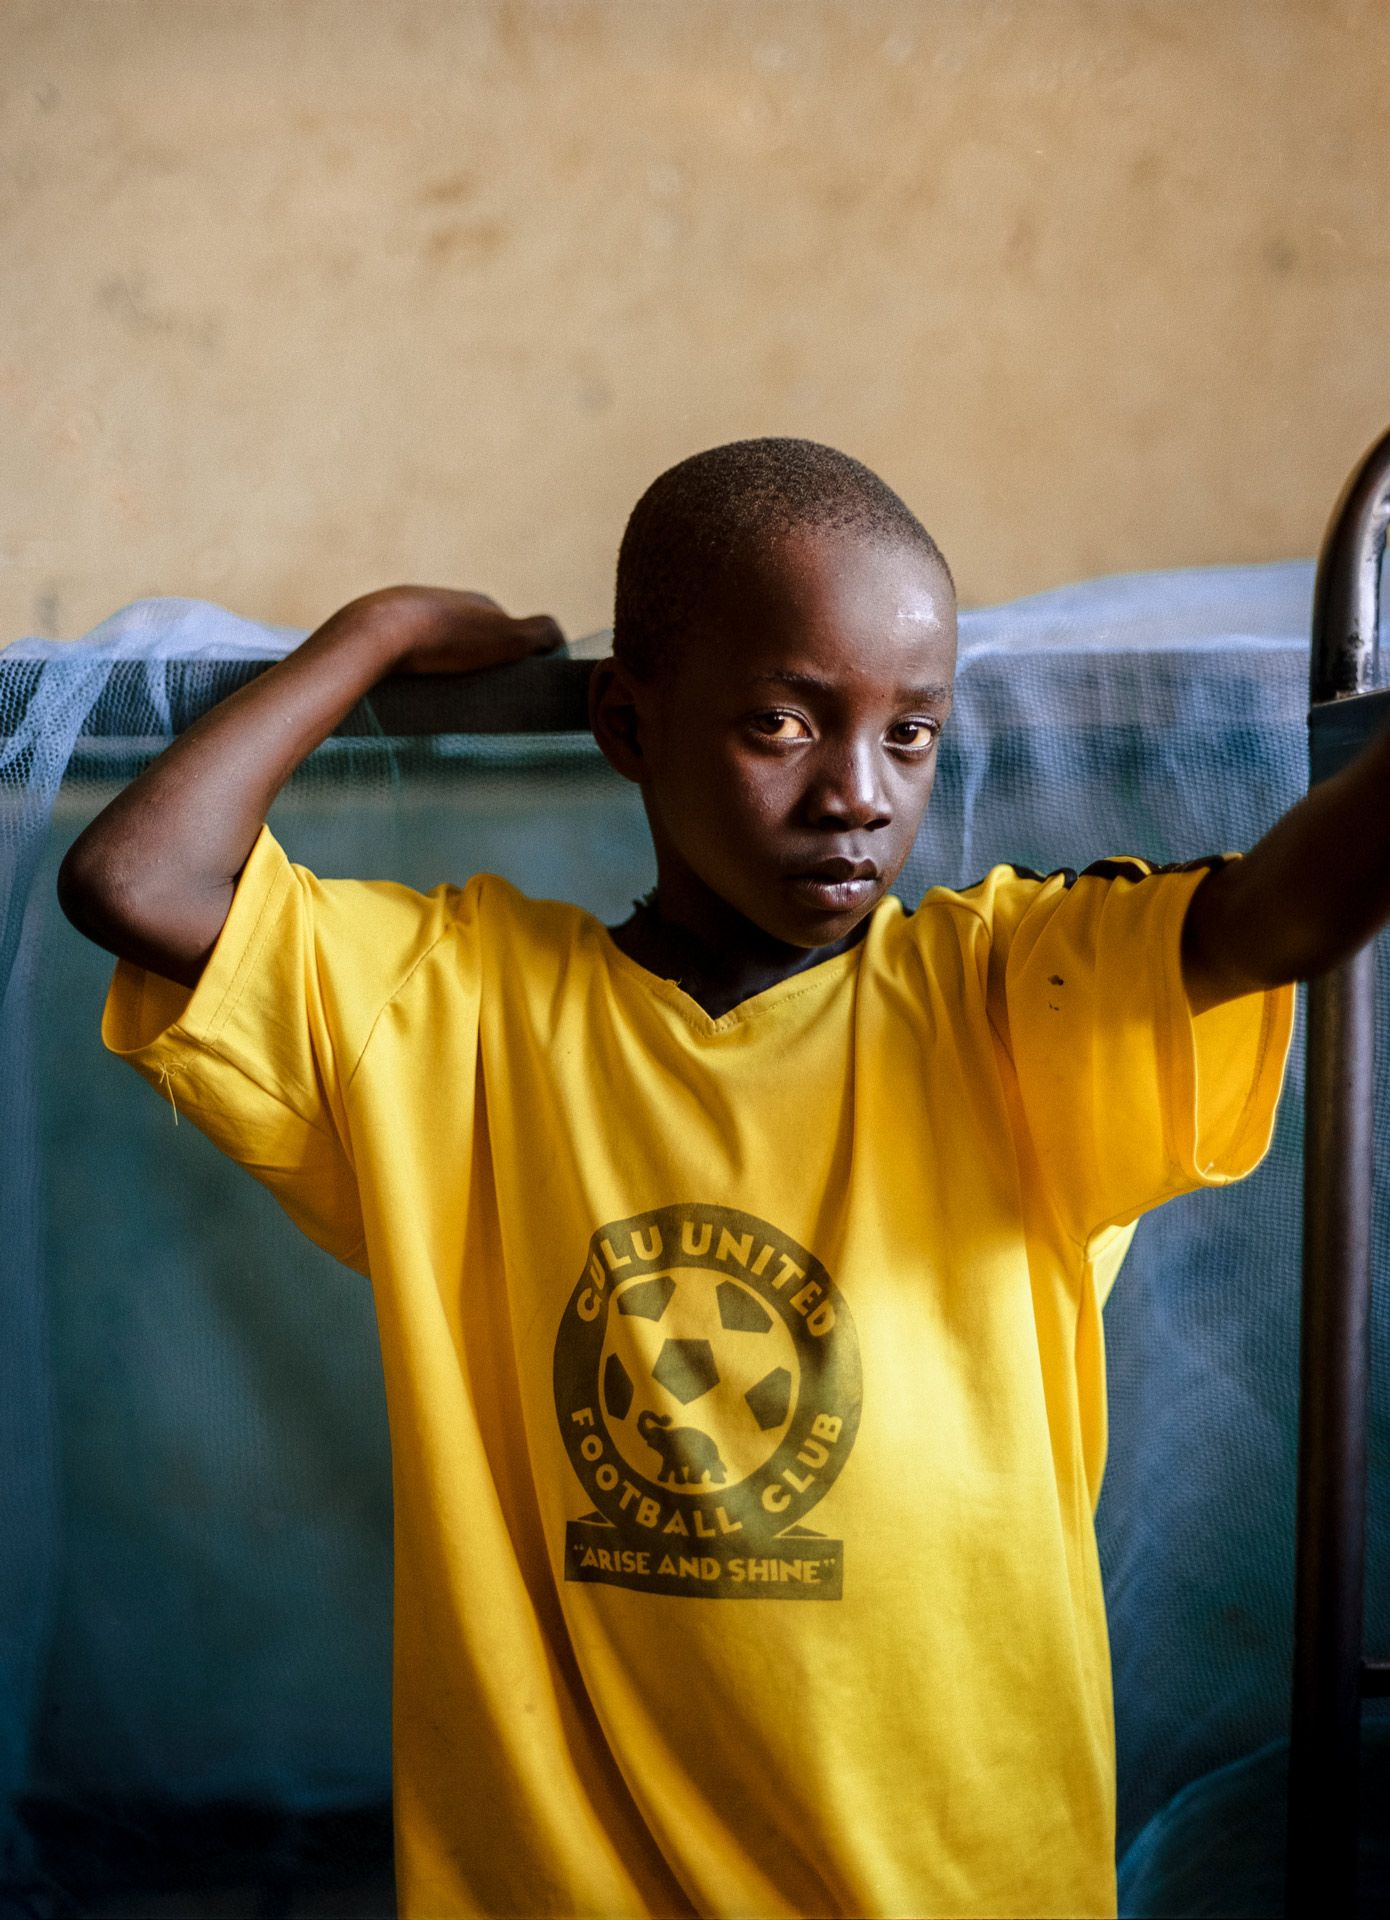 young black boy looking at camera wearing yellow soccer jersey by Alexi Hobbs in Uganda for Football for Good with Sportsnet